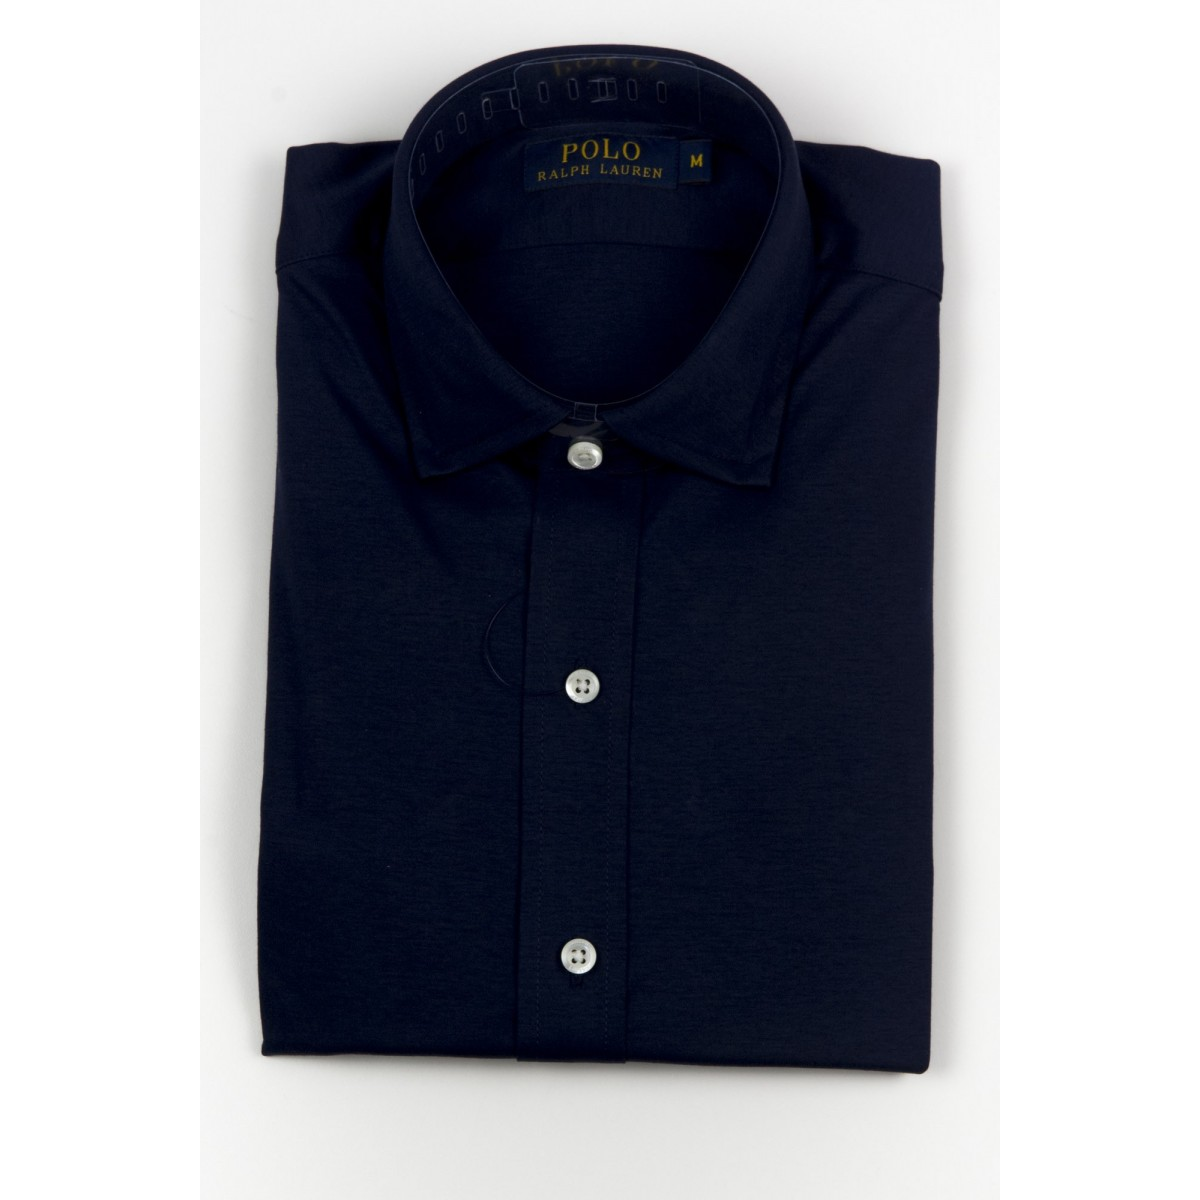 Hemden Ralph Lauren Manner - A10Kjp18Cways A4560 - blu